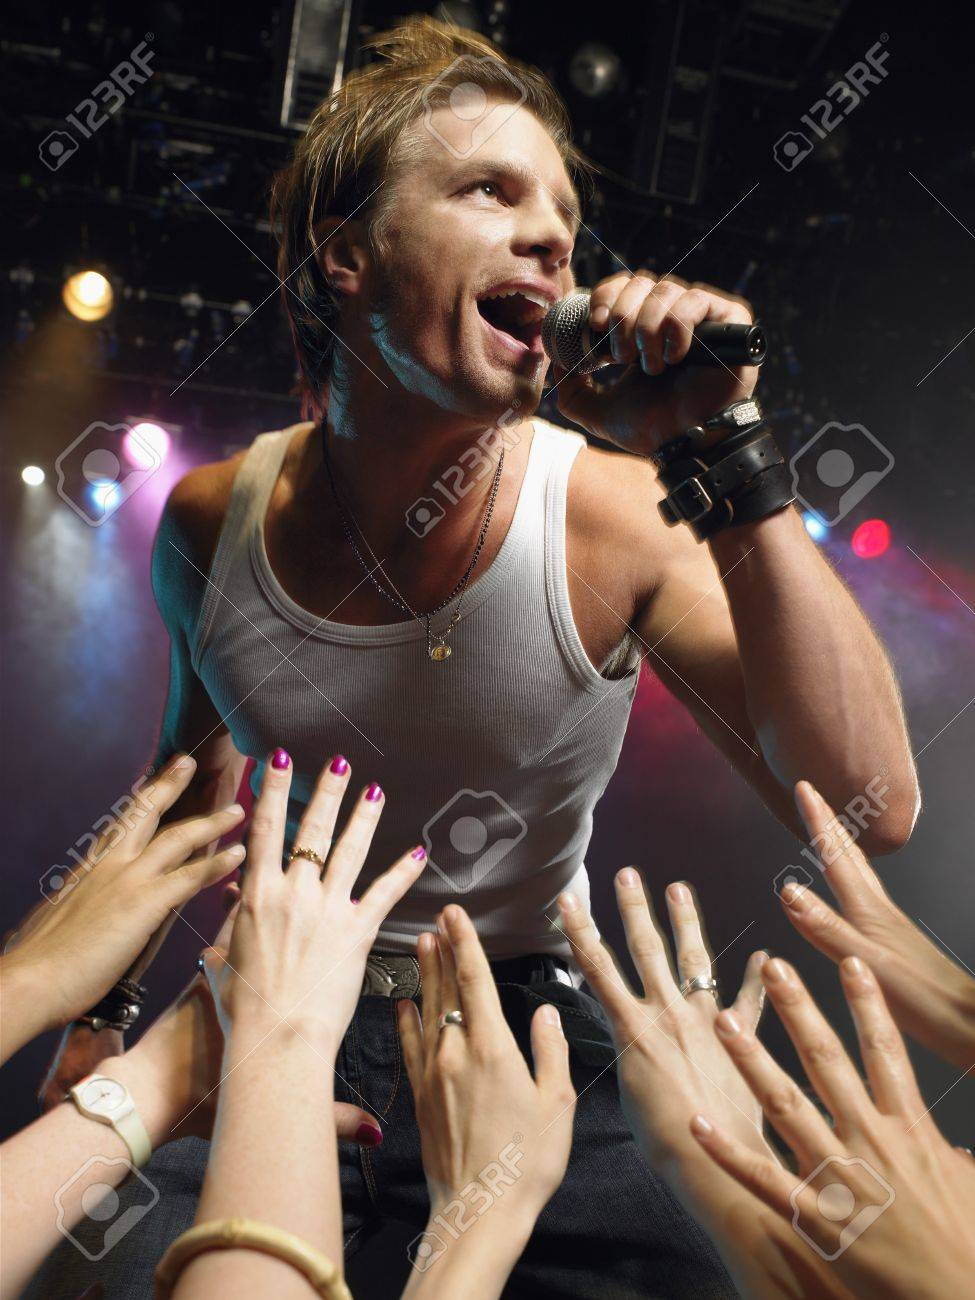 Low angle view of male rock star singing on stage with adoring fans reaching their hands up towards him Stock Photo - 19326908